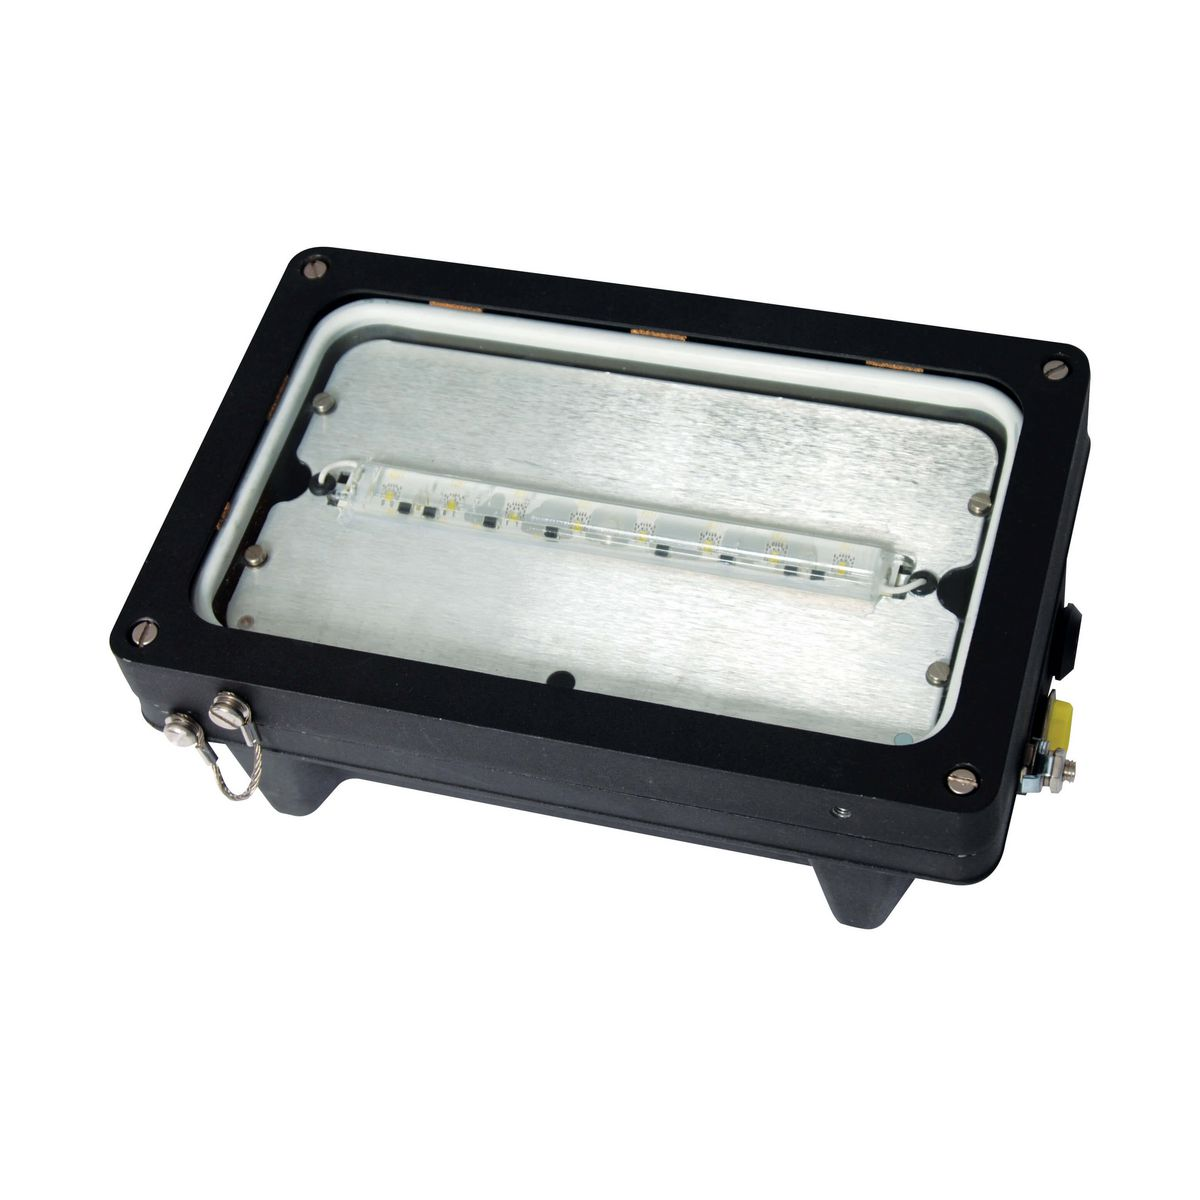 Led Wall Pack With Emergency: NexLED Emergency LED Bulkhead